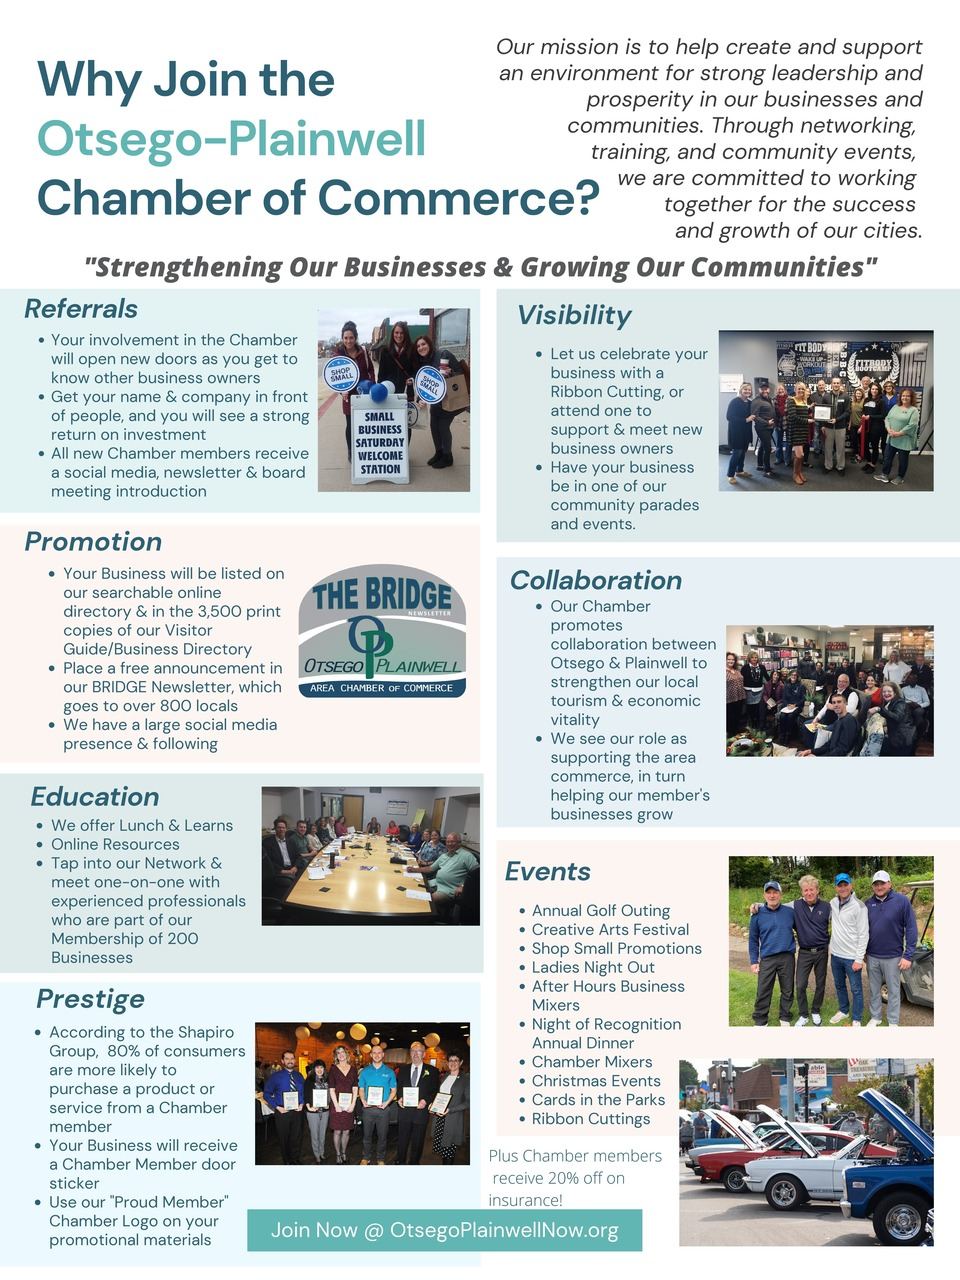 Why join the chamber page 0